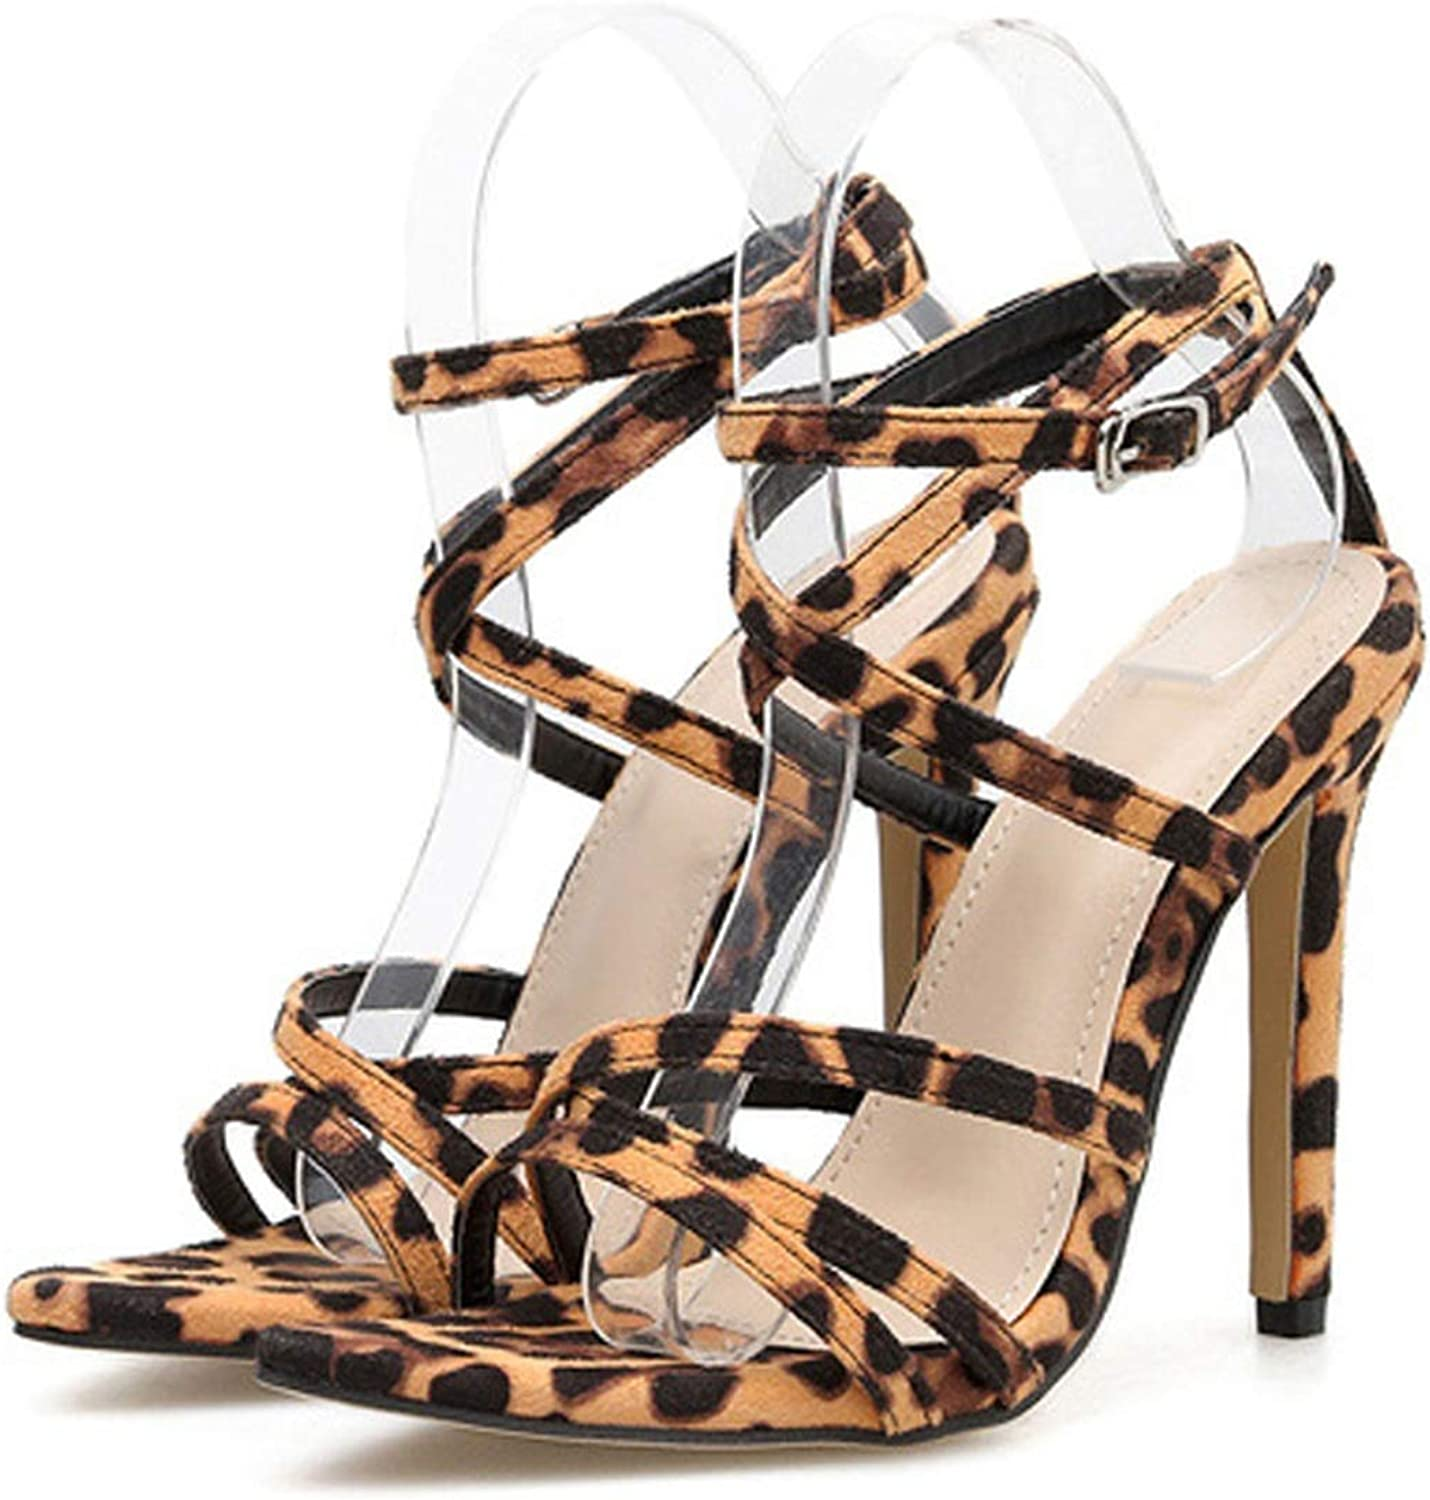 Shine-shine Thin High Heel Sandals Women Sexy Leopard Snakeskin Sandals Ankle Rap